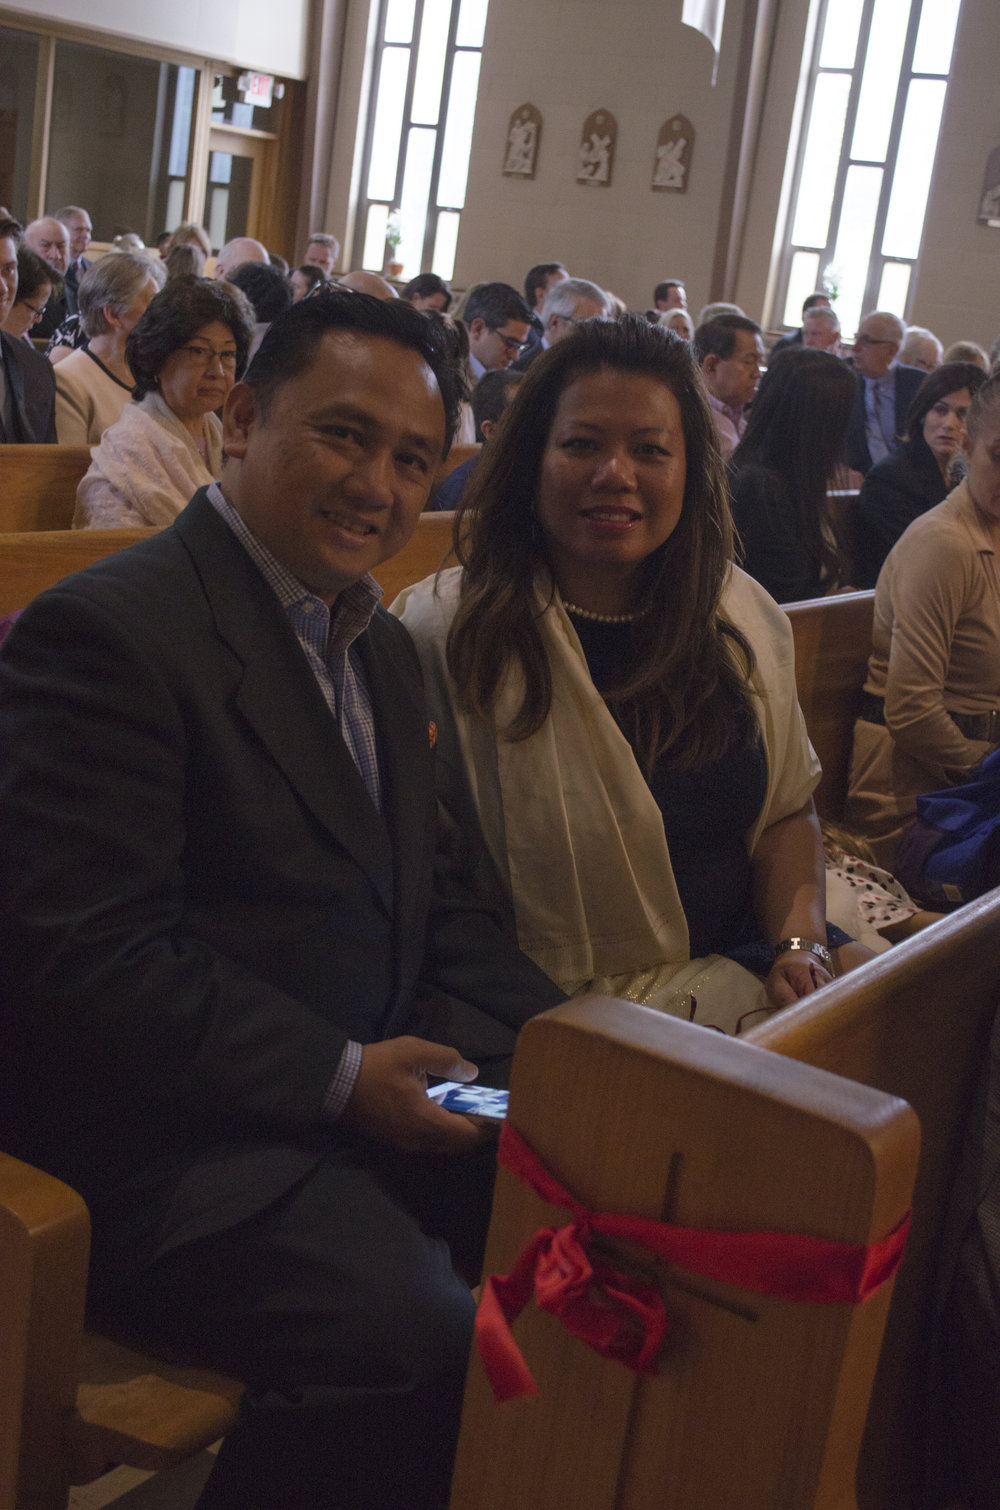 Mom_and_dad_at_the_church_.jpg